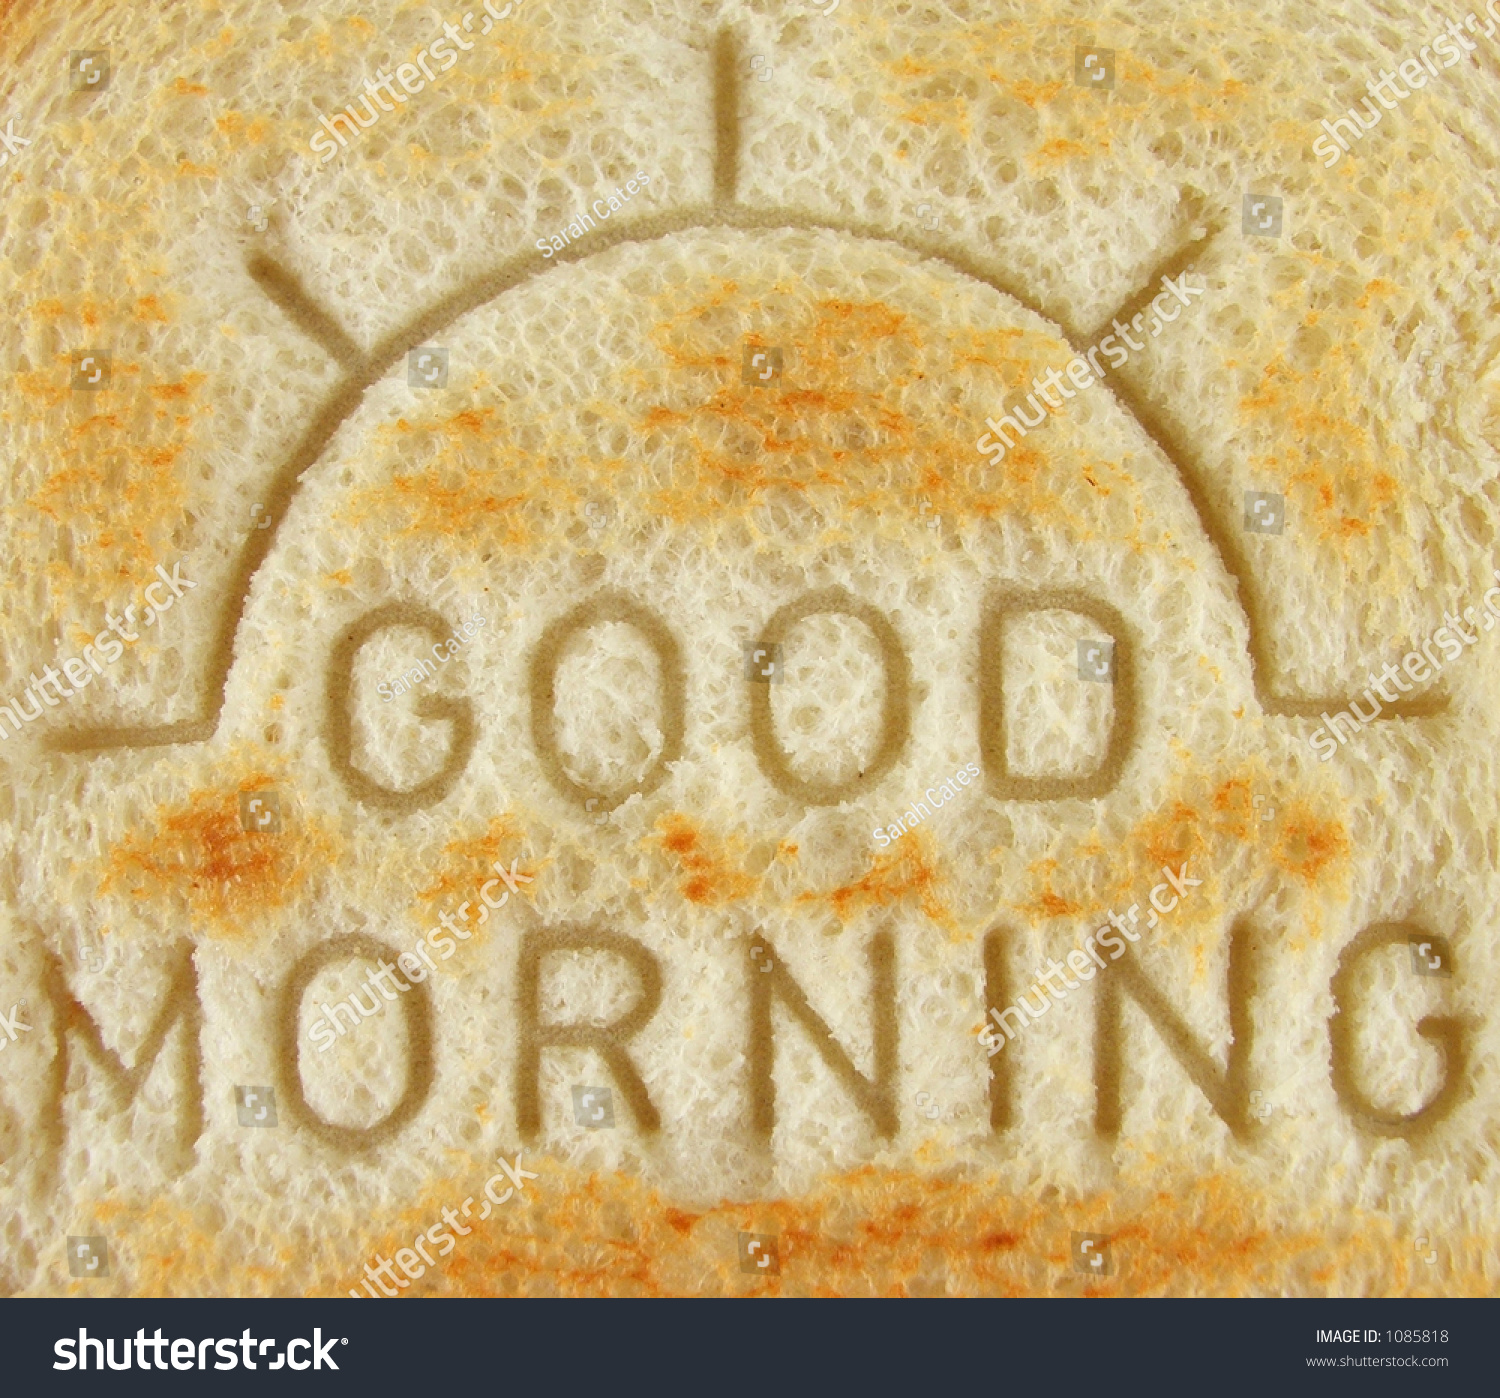 Good Morning Imprint On Toast Stock Photo 1085818